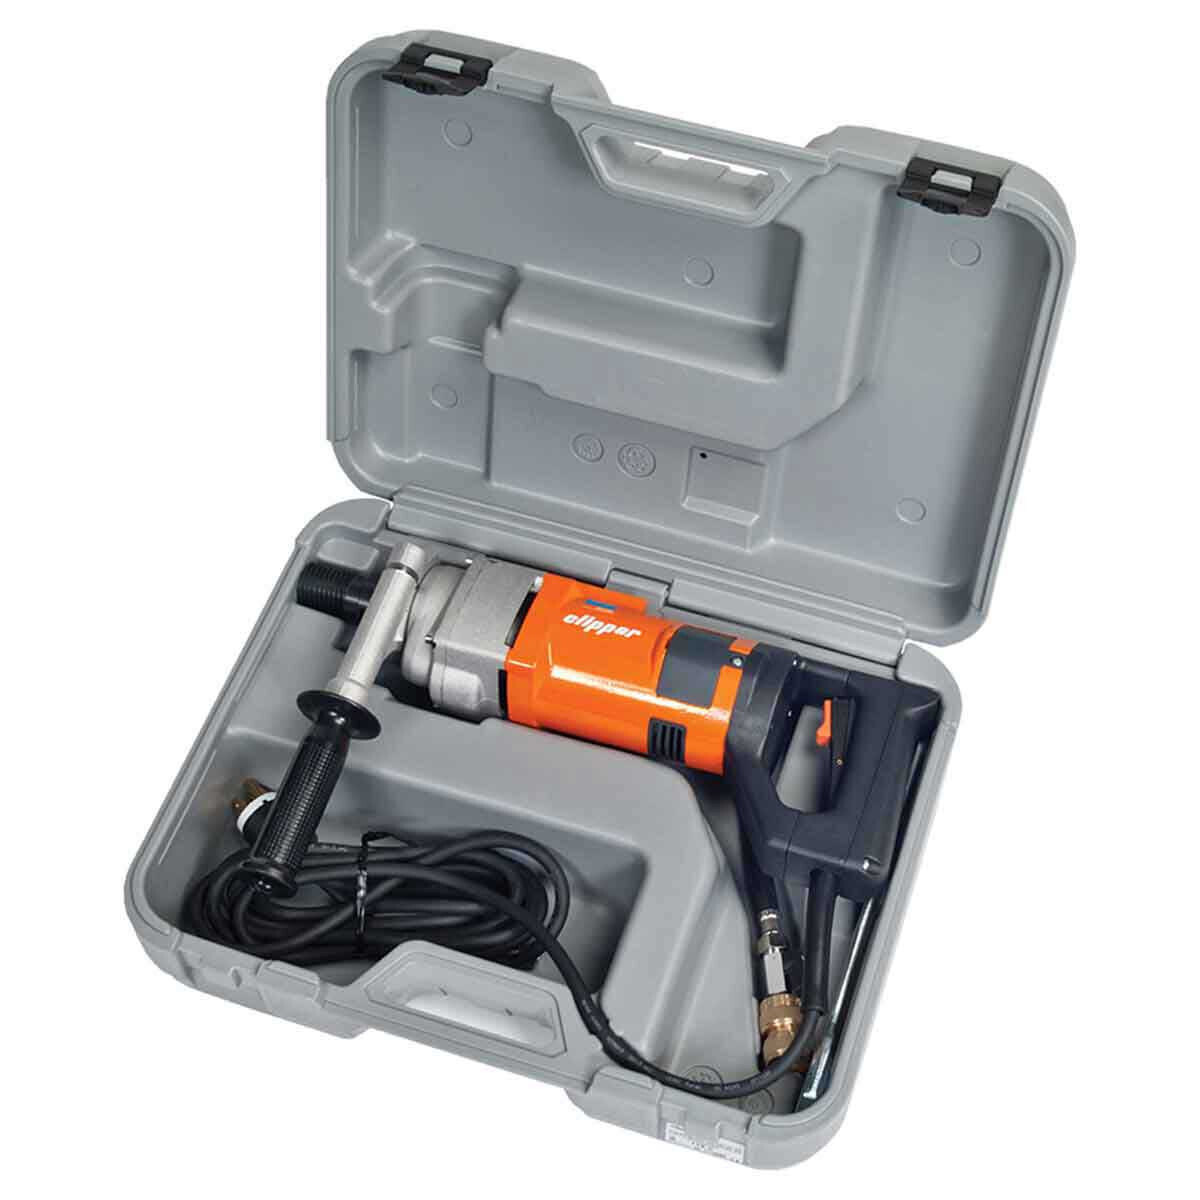 Norton Clipper HHDET1800 Core Drill with Carrying Case